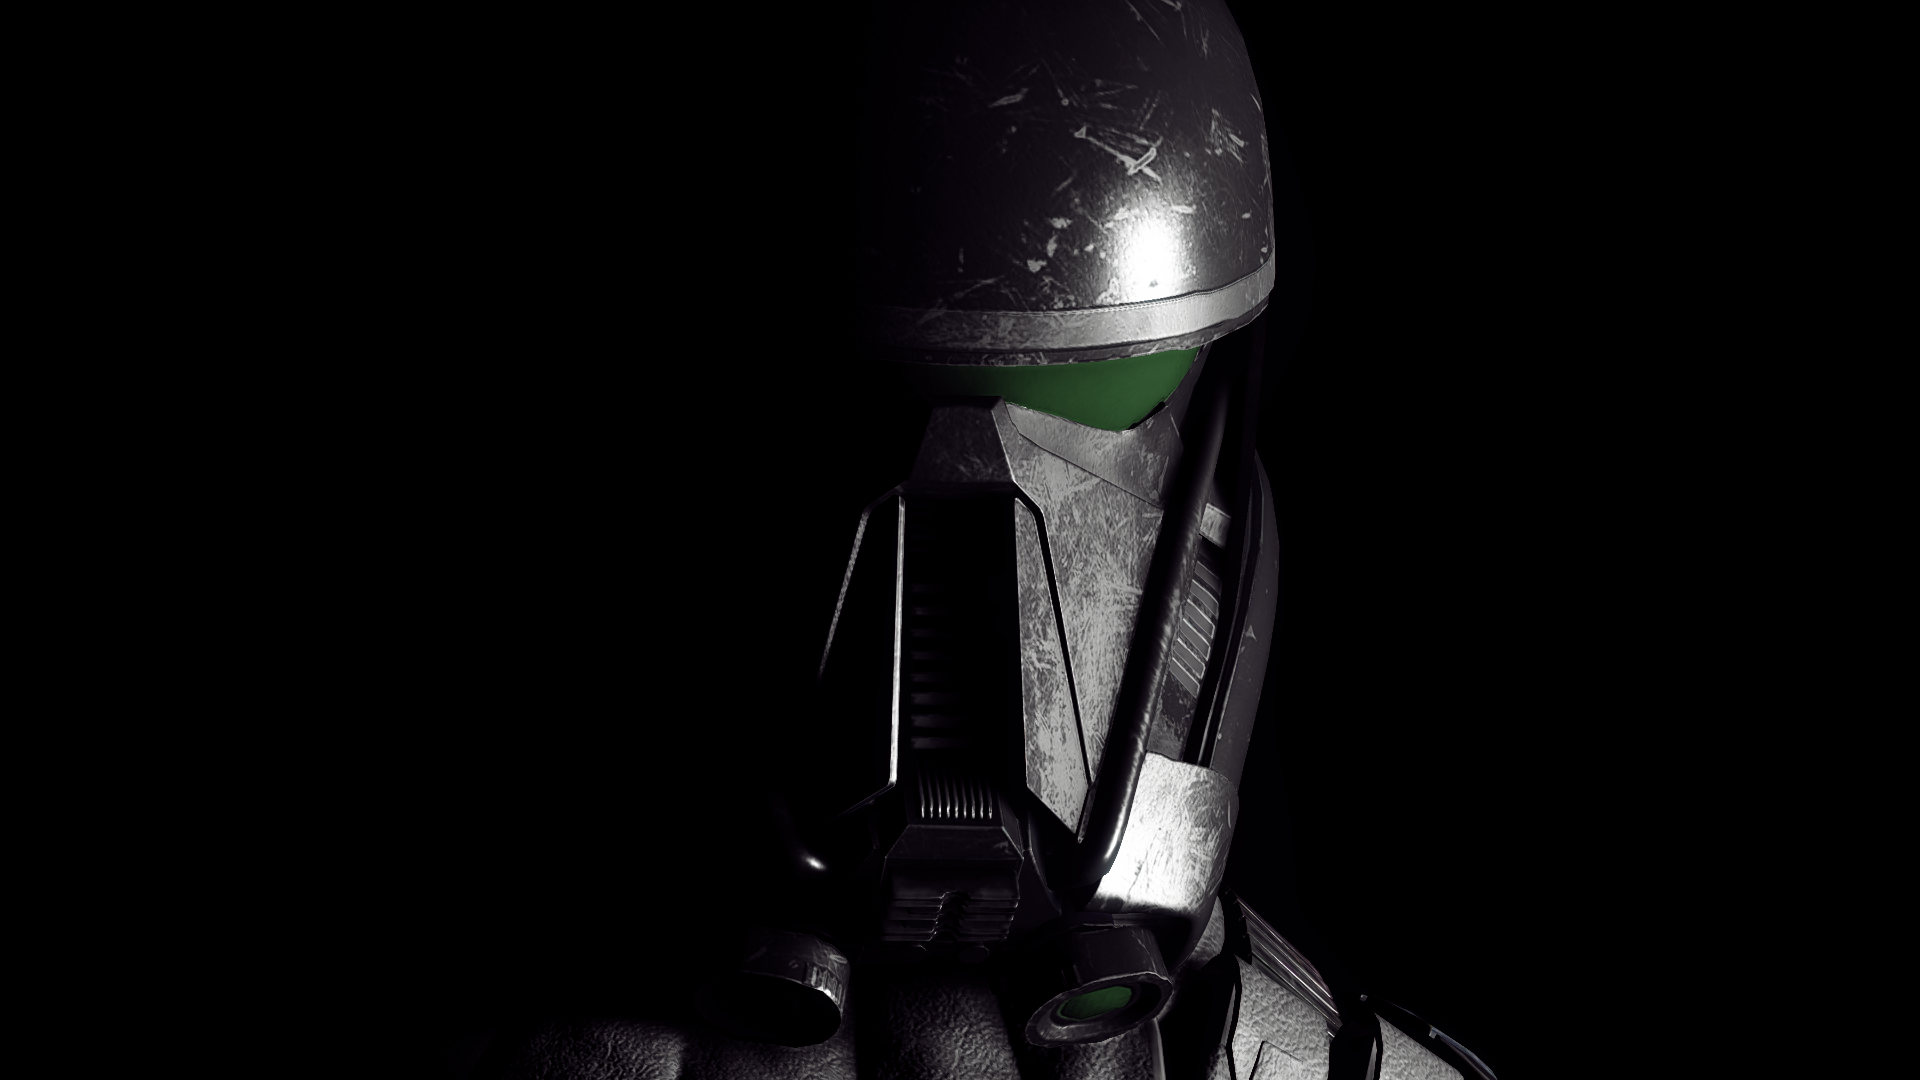 Death Trooper Wallpapers Top Free Death Trooper Backgrounds Wallpaperaccess